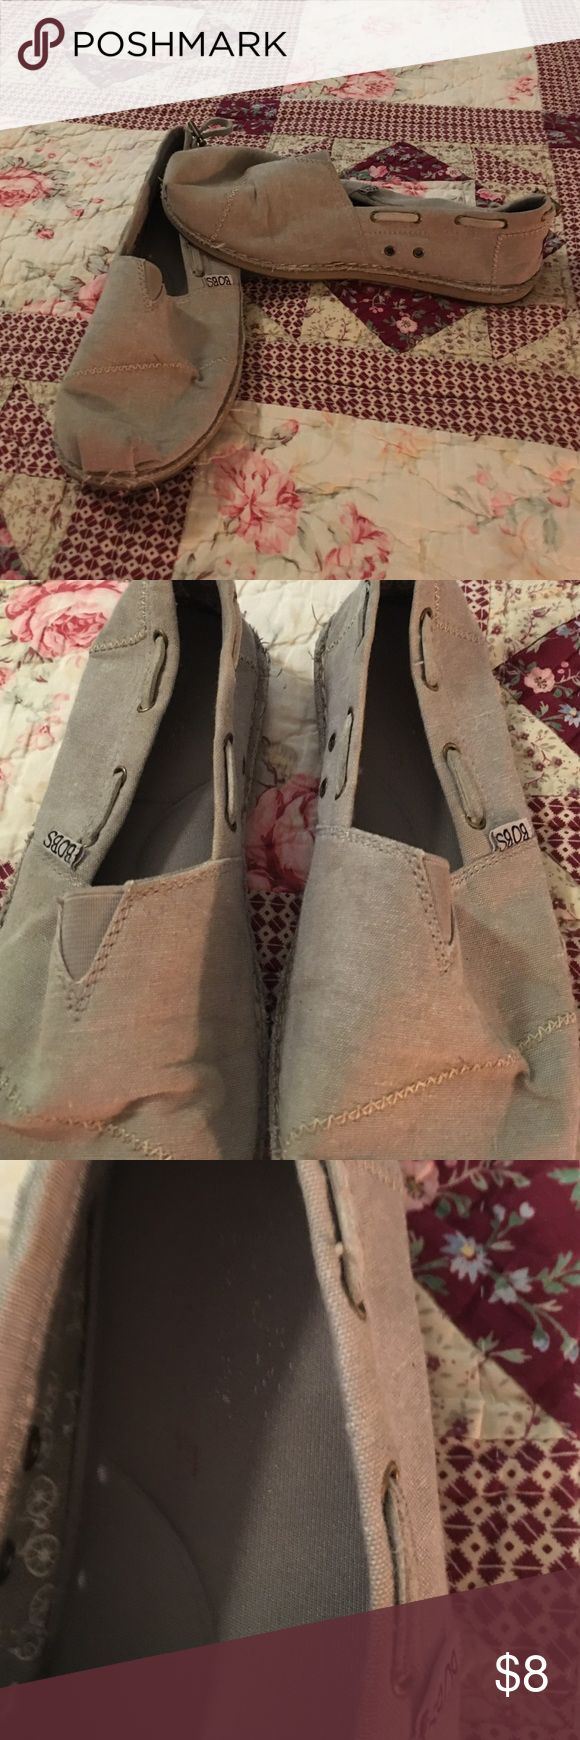 Skechers slip on shoes🍁 Slip on bobs Skechers with memory foam. Well loved but in good condition 🍁 Skechers Shoes Espadrilles